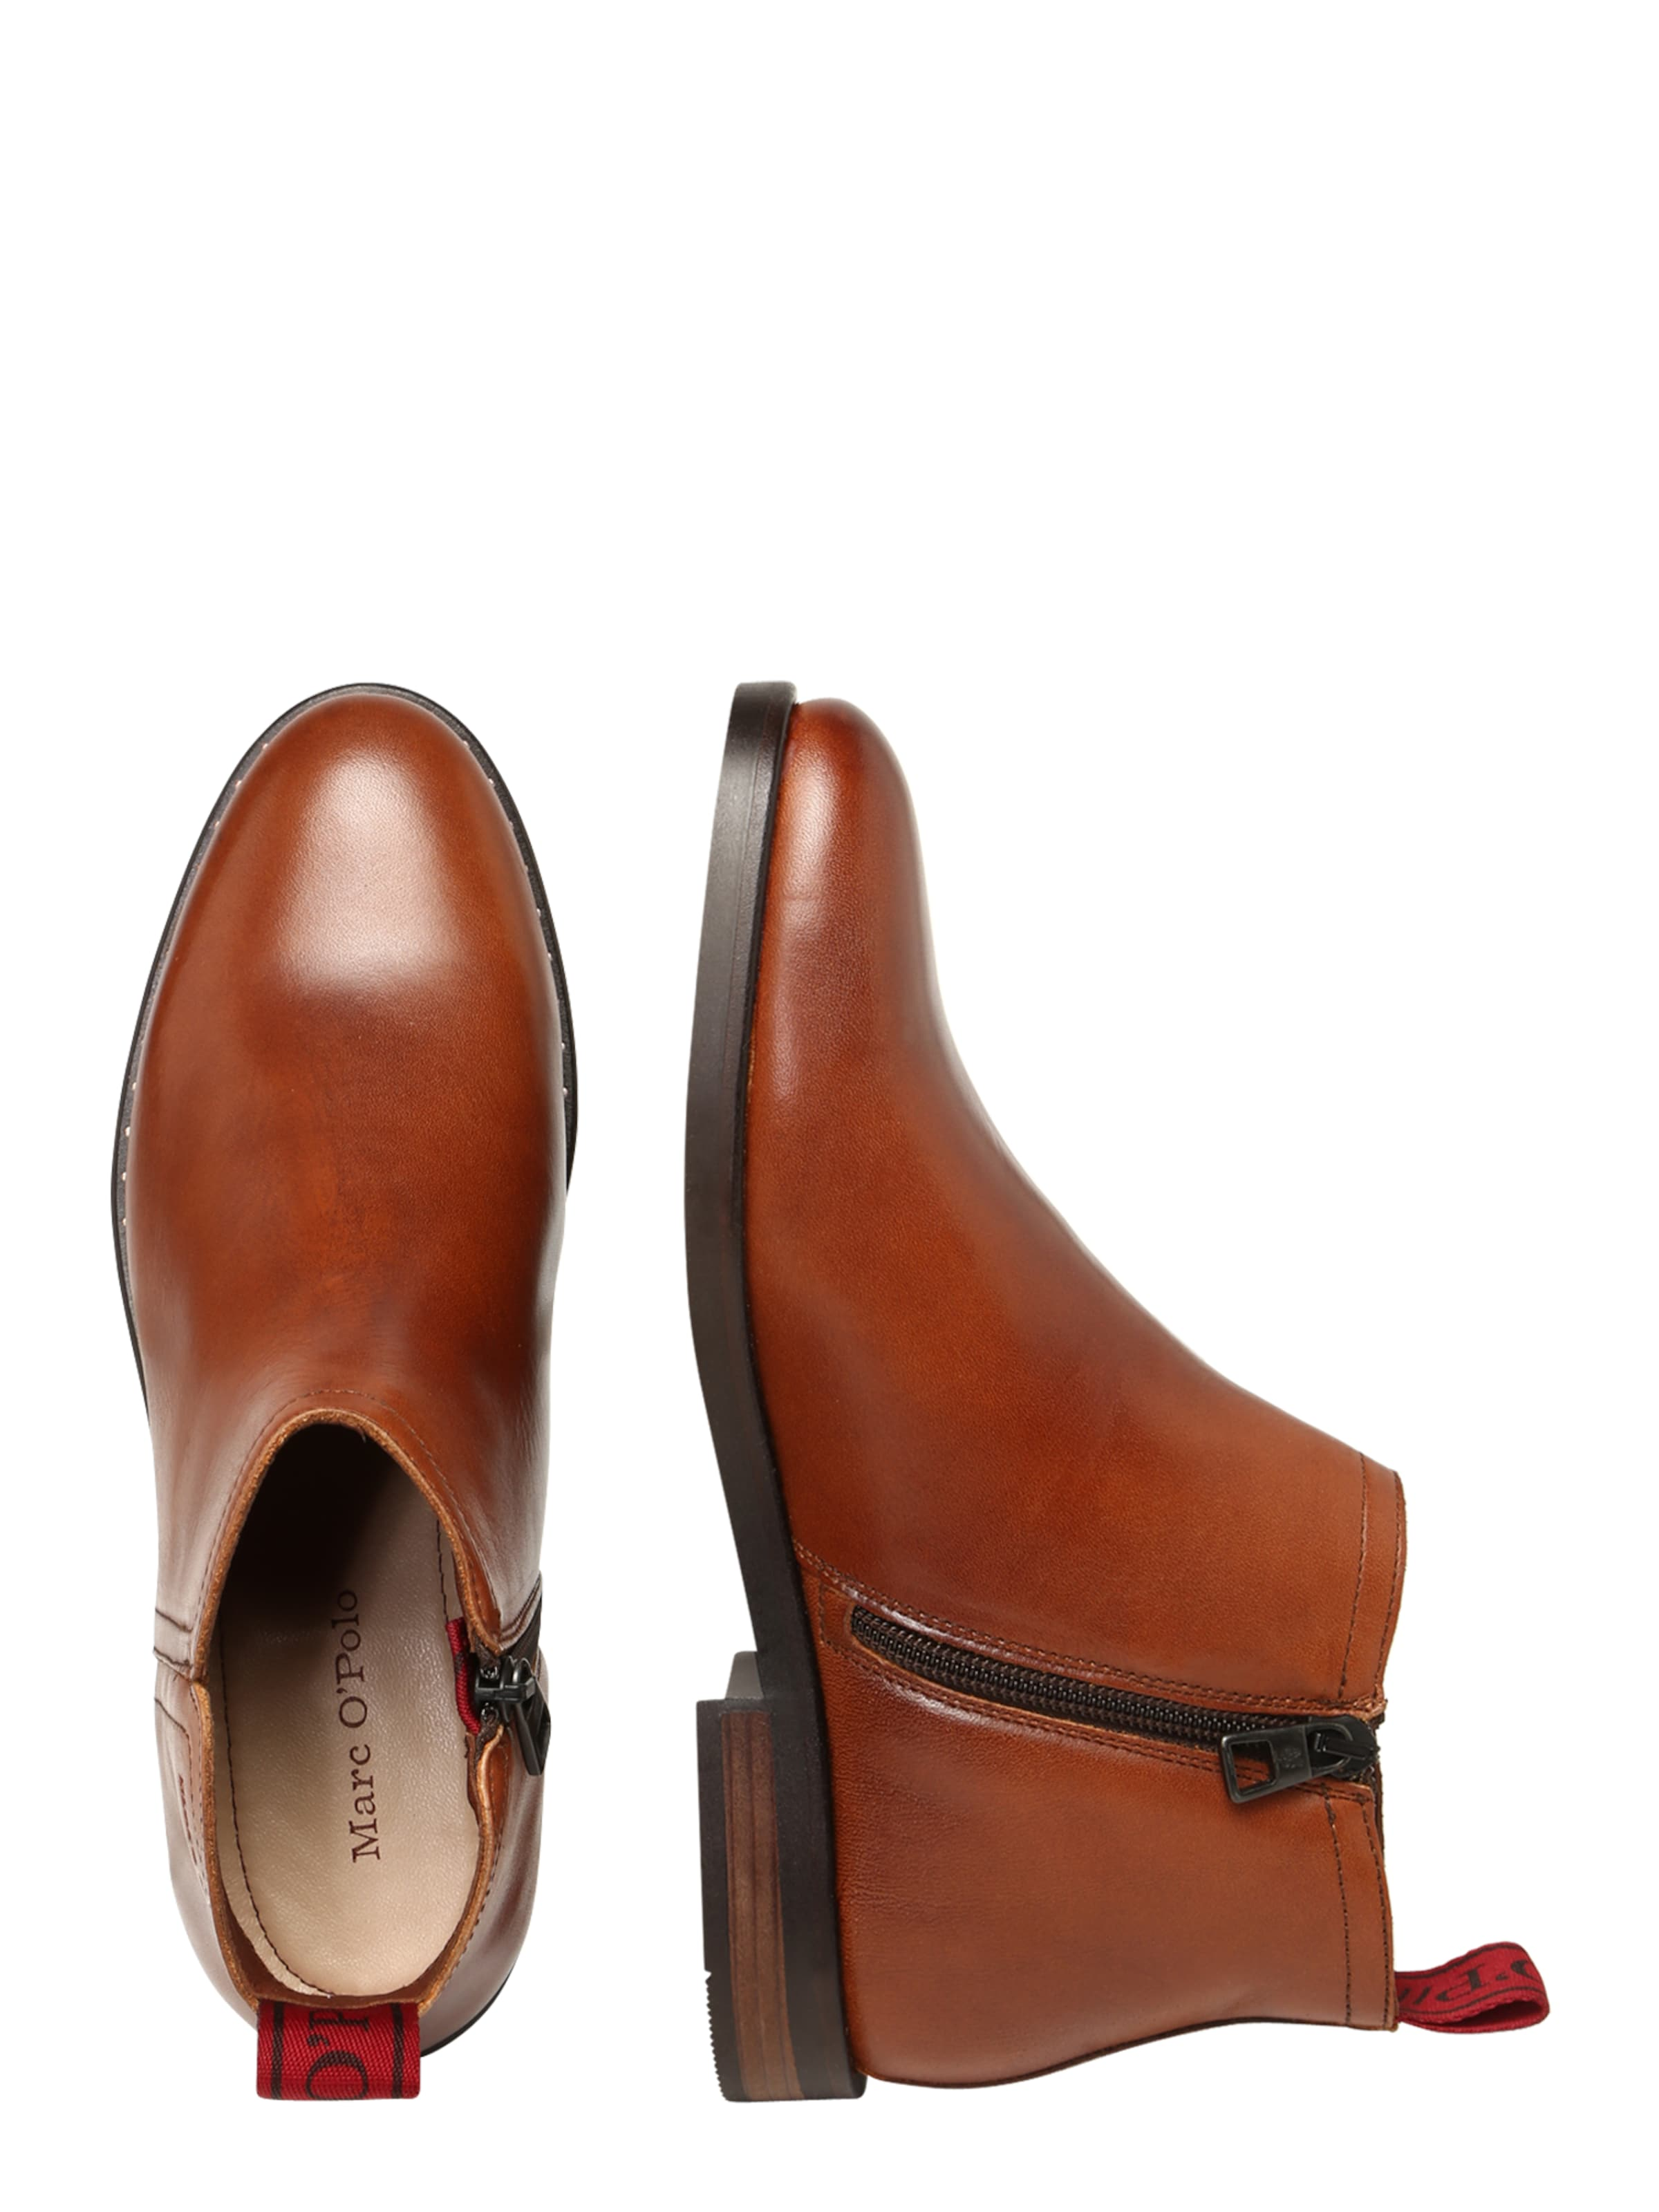 In O'polo Marc Stiefeletten Cognac 'paris' dCBWxeor